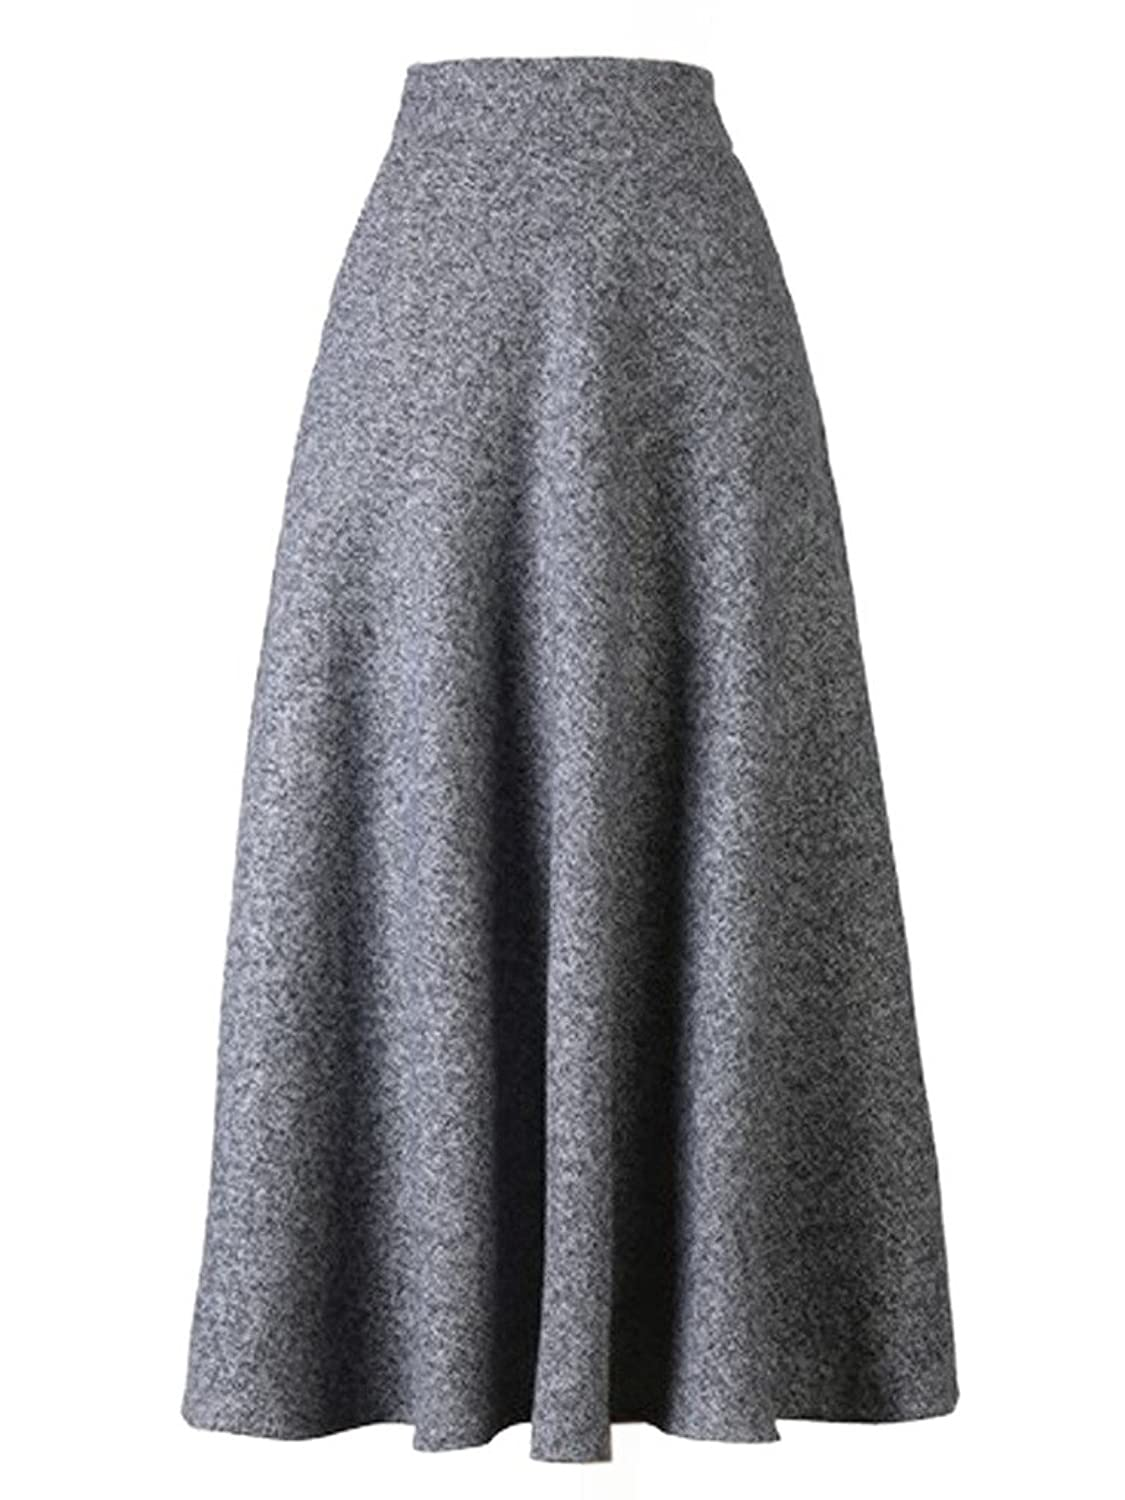 Victorian Skirts | Bustle, Walking, Edwardian Skirts Choies Womens High Waist A-line Flared Long Skirt Winter Fall Midi Skirt $33.99 AT vintagedancer.com